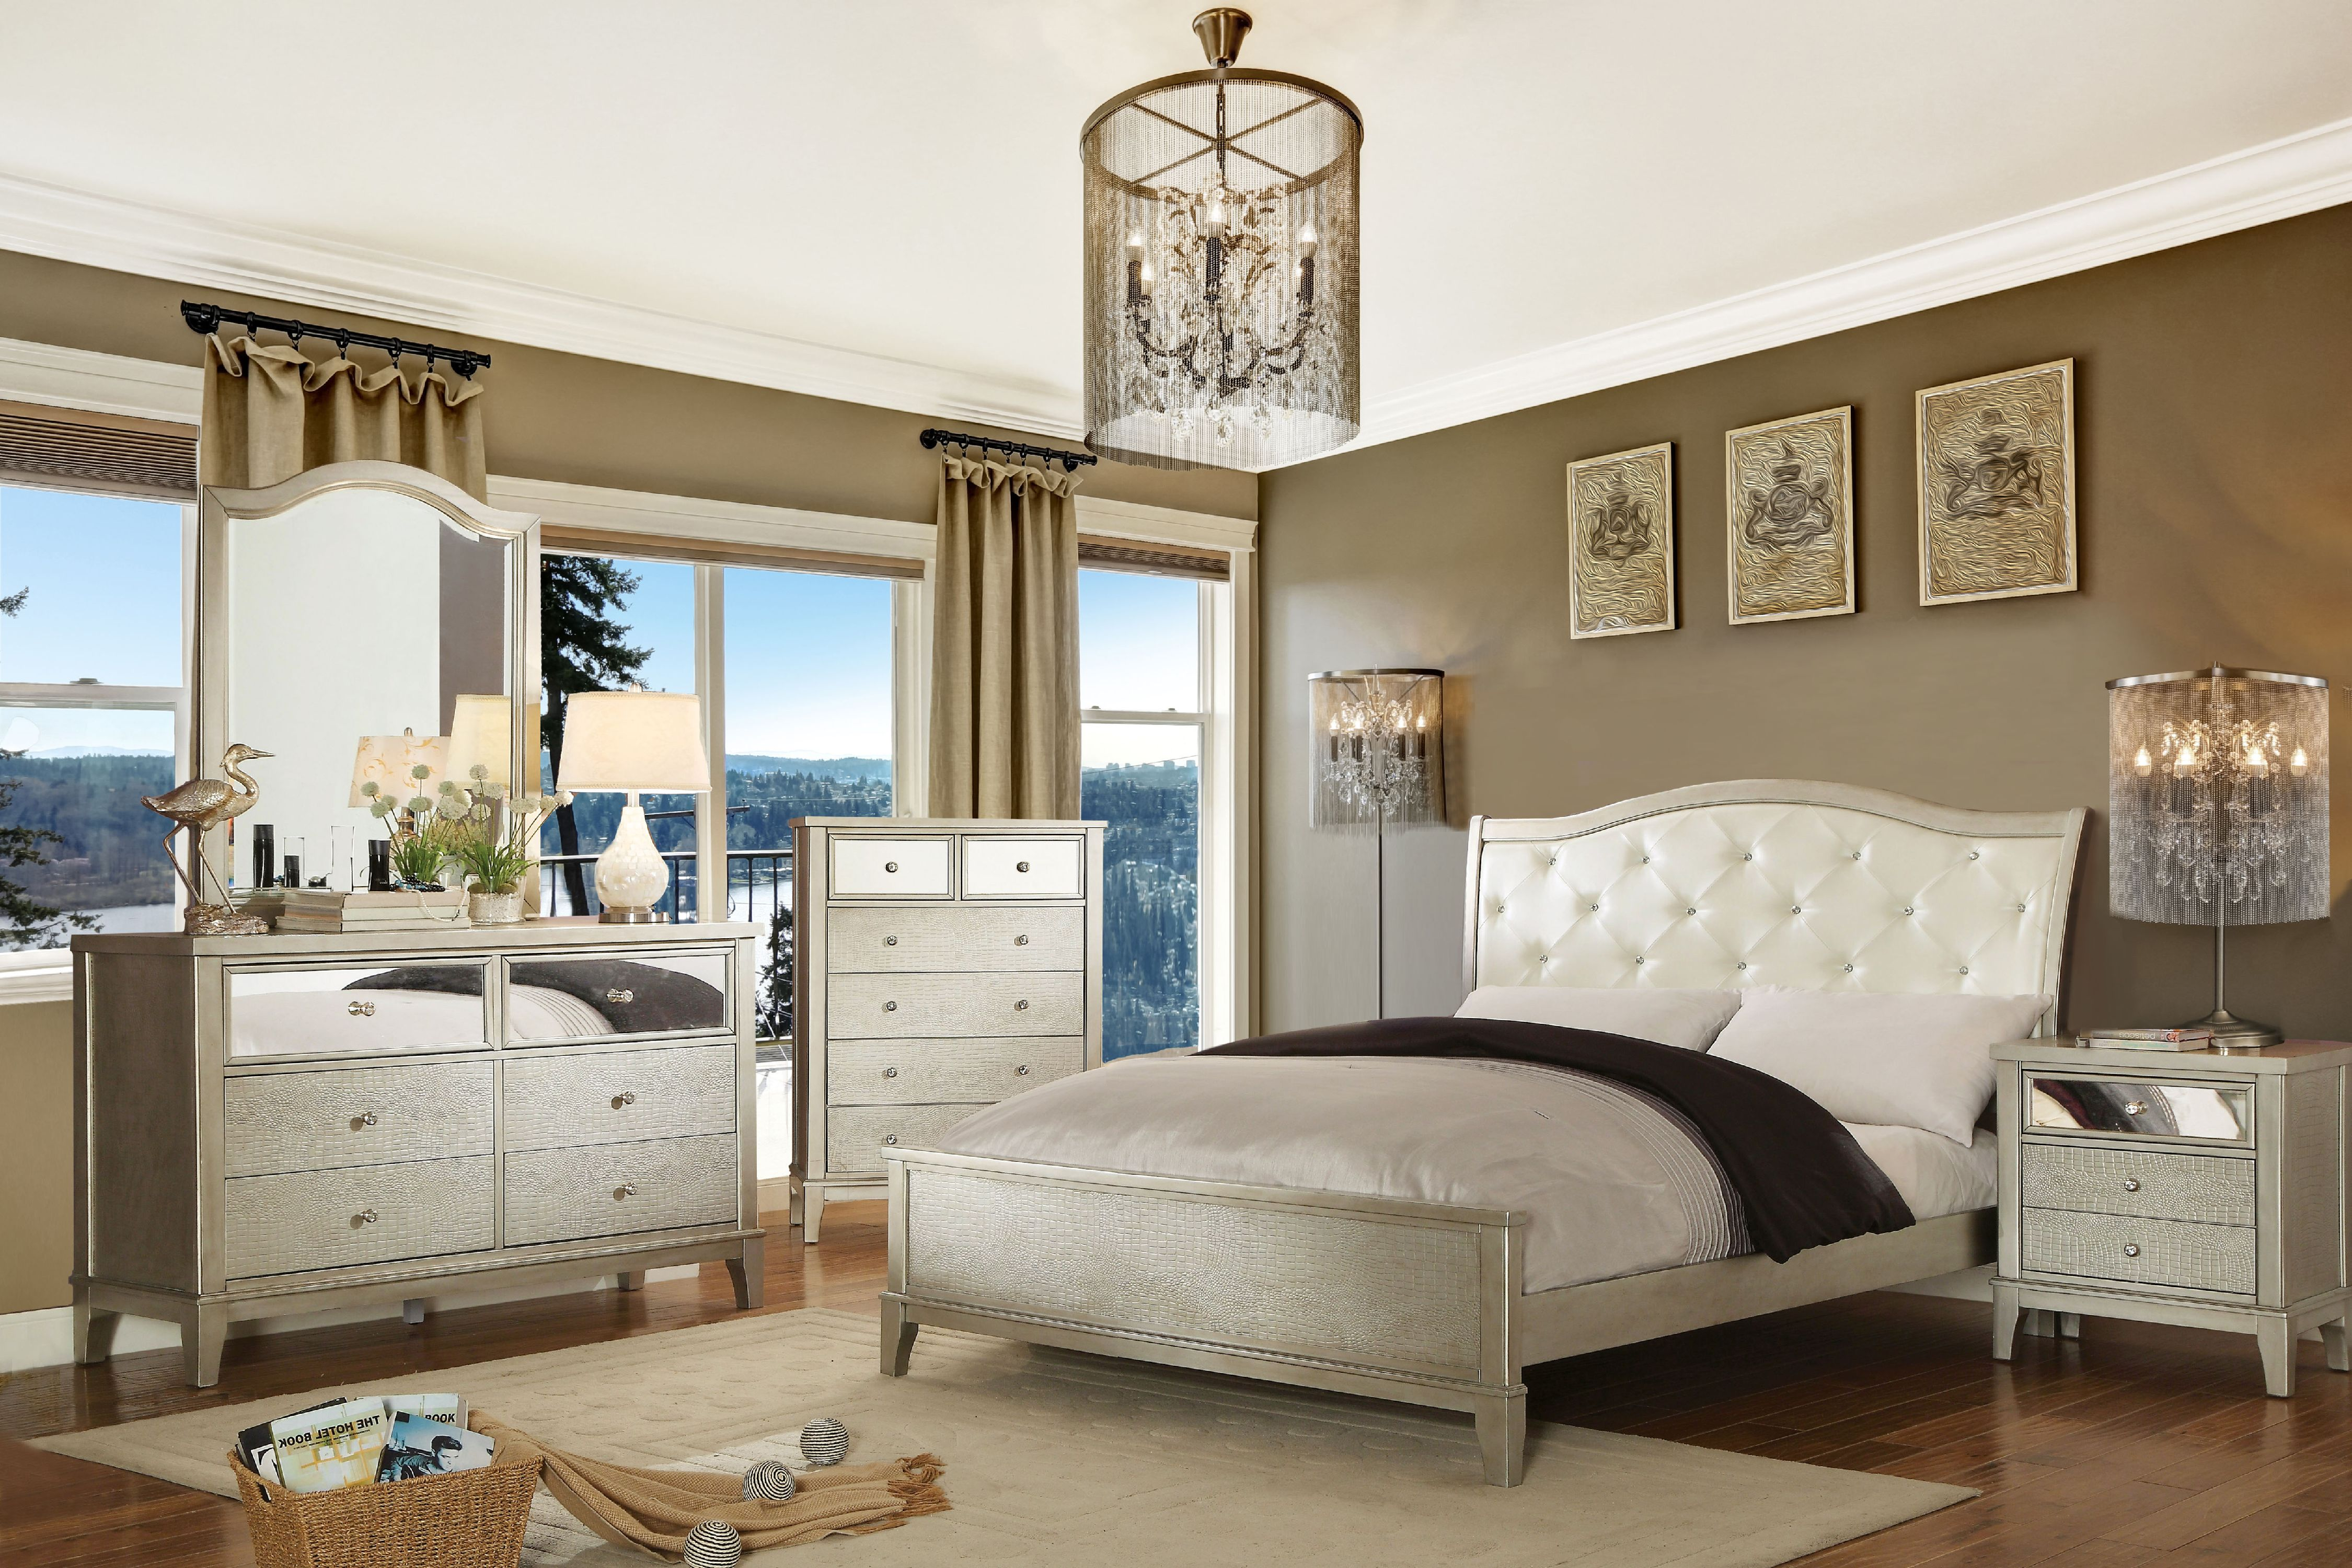 Furniture of America Malayah Contemporary Style 4-Piece Full Size Bedroom Set, Silver by Furniture of America